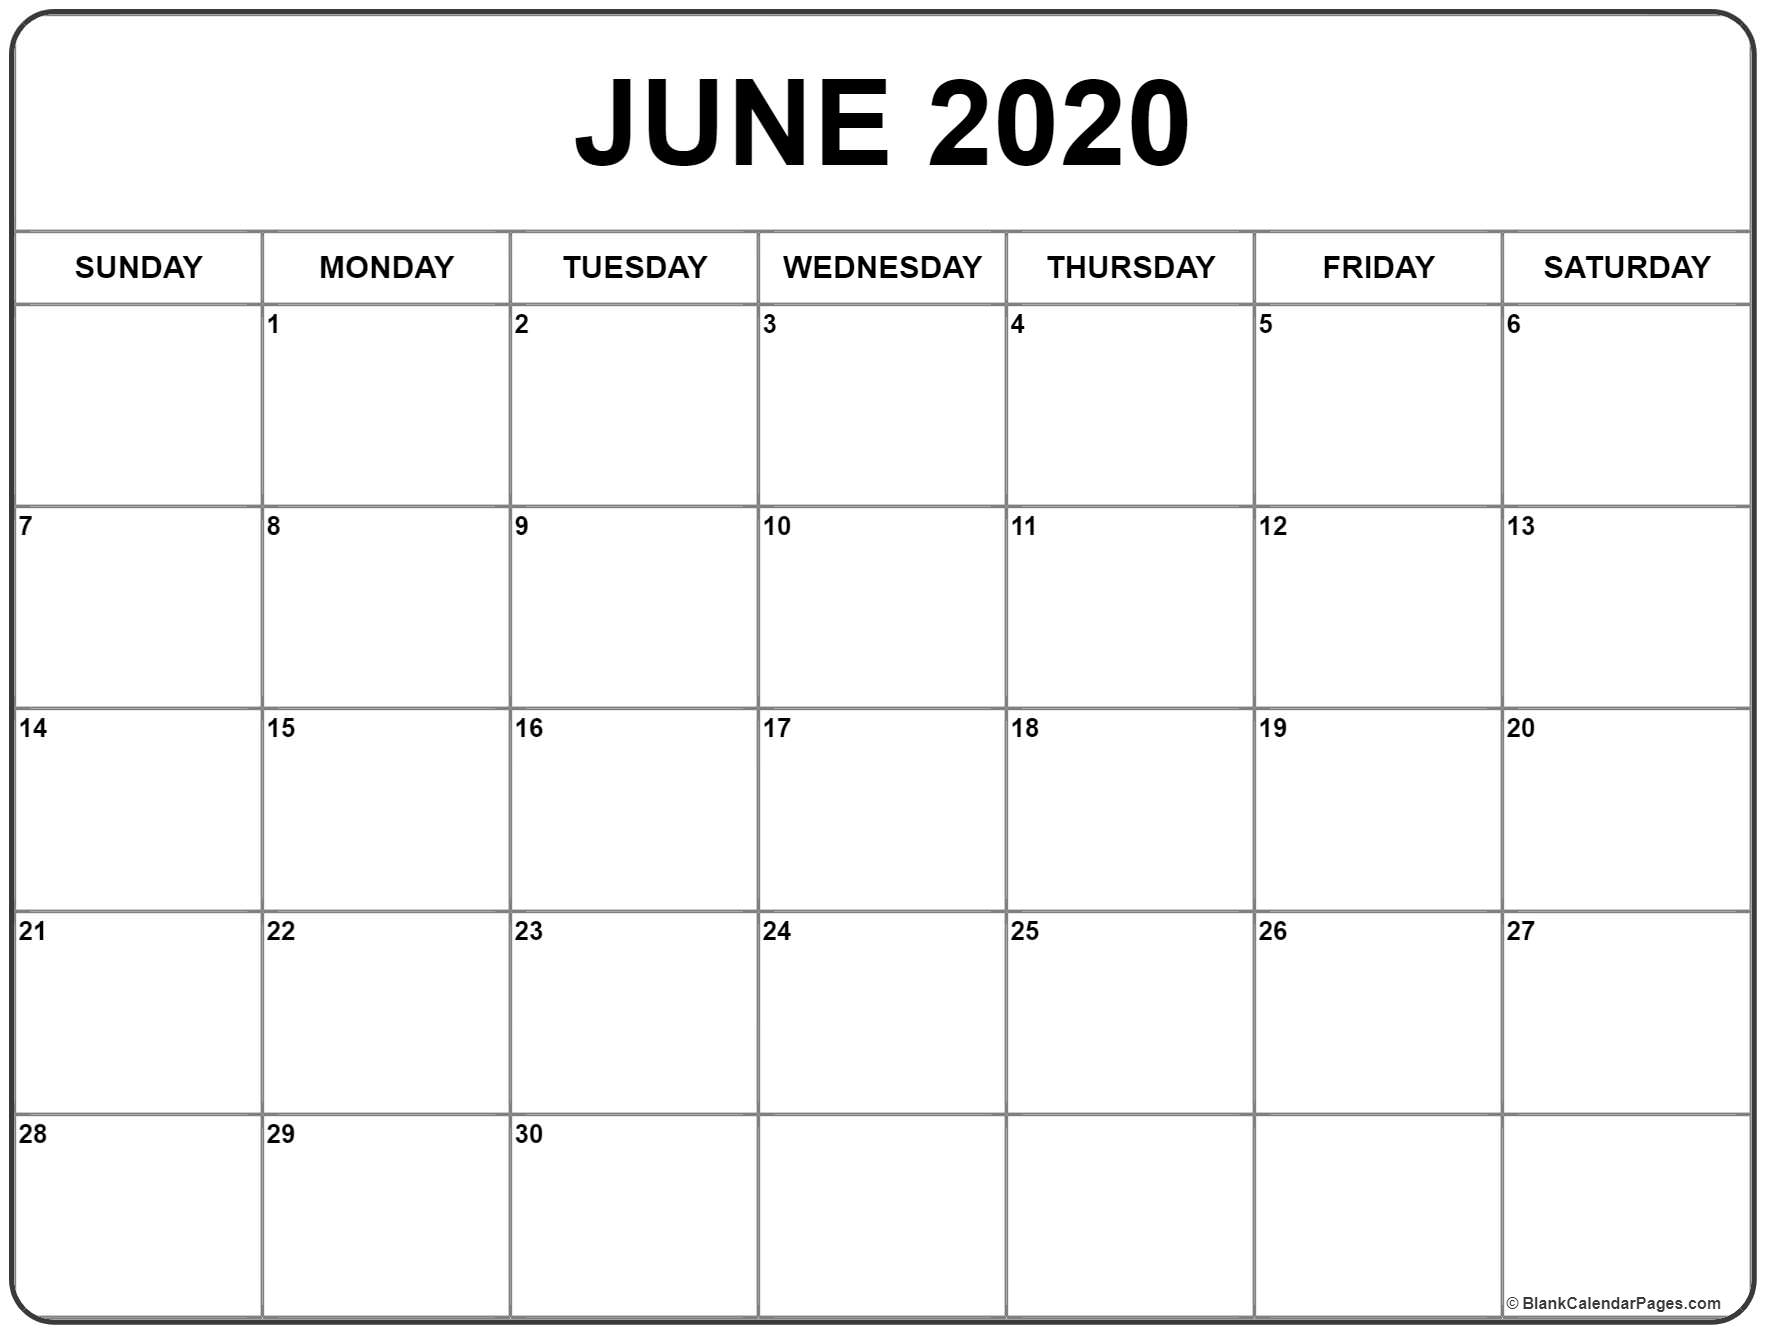 June 2020 Calendar | Free Printable Monthly Calendars in 2020 Calendar With Space To Write